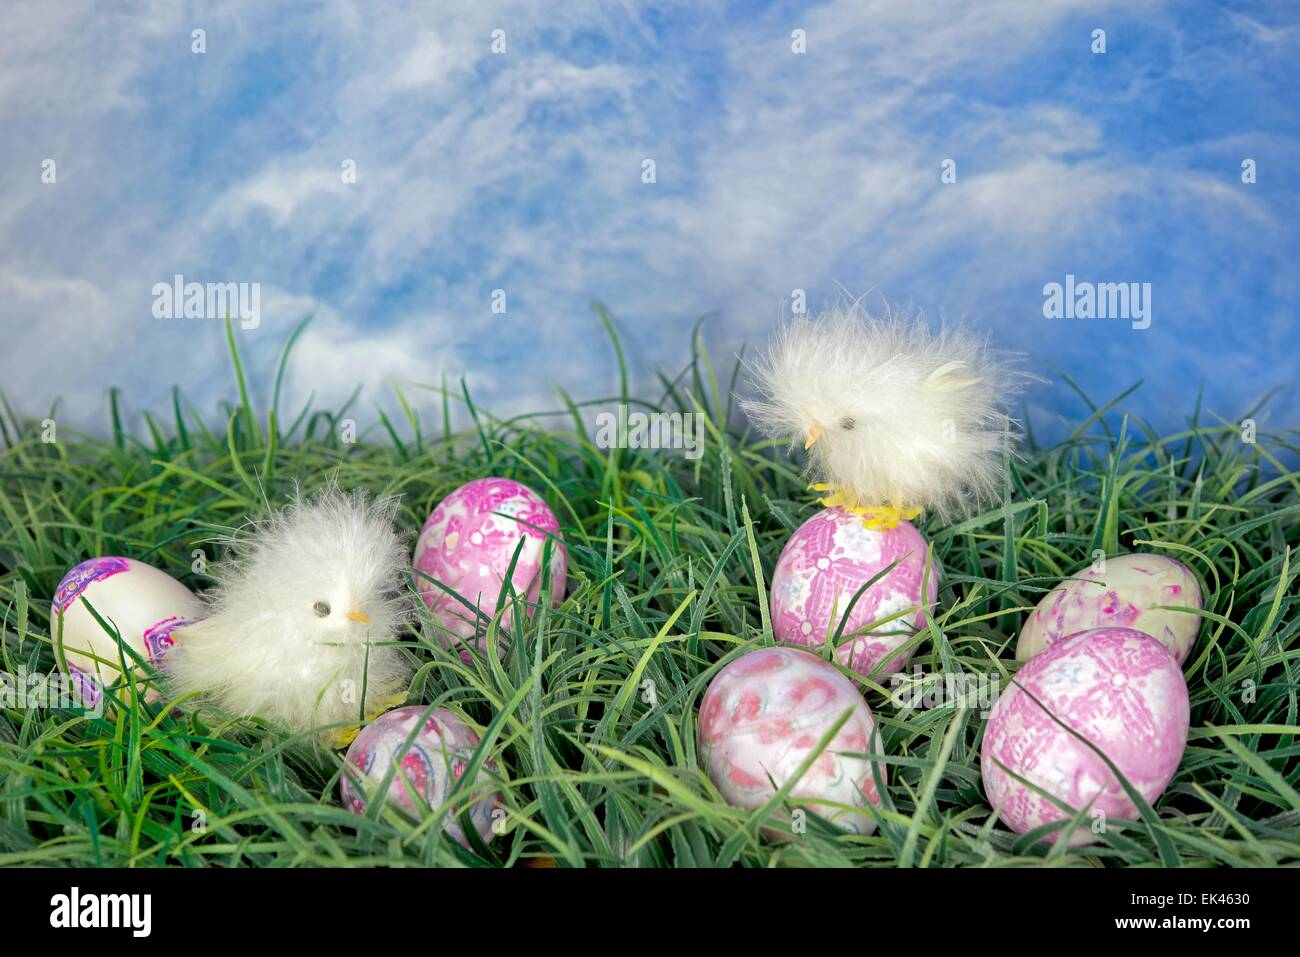 Dyed Baby Chicks Stock Photos & Dyed Baby Chicks Stock Images - Alamy